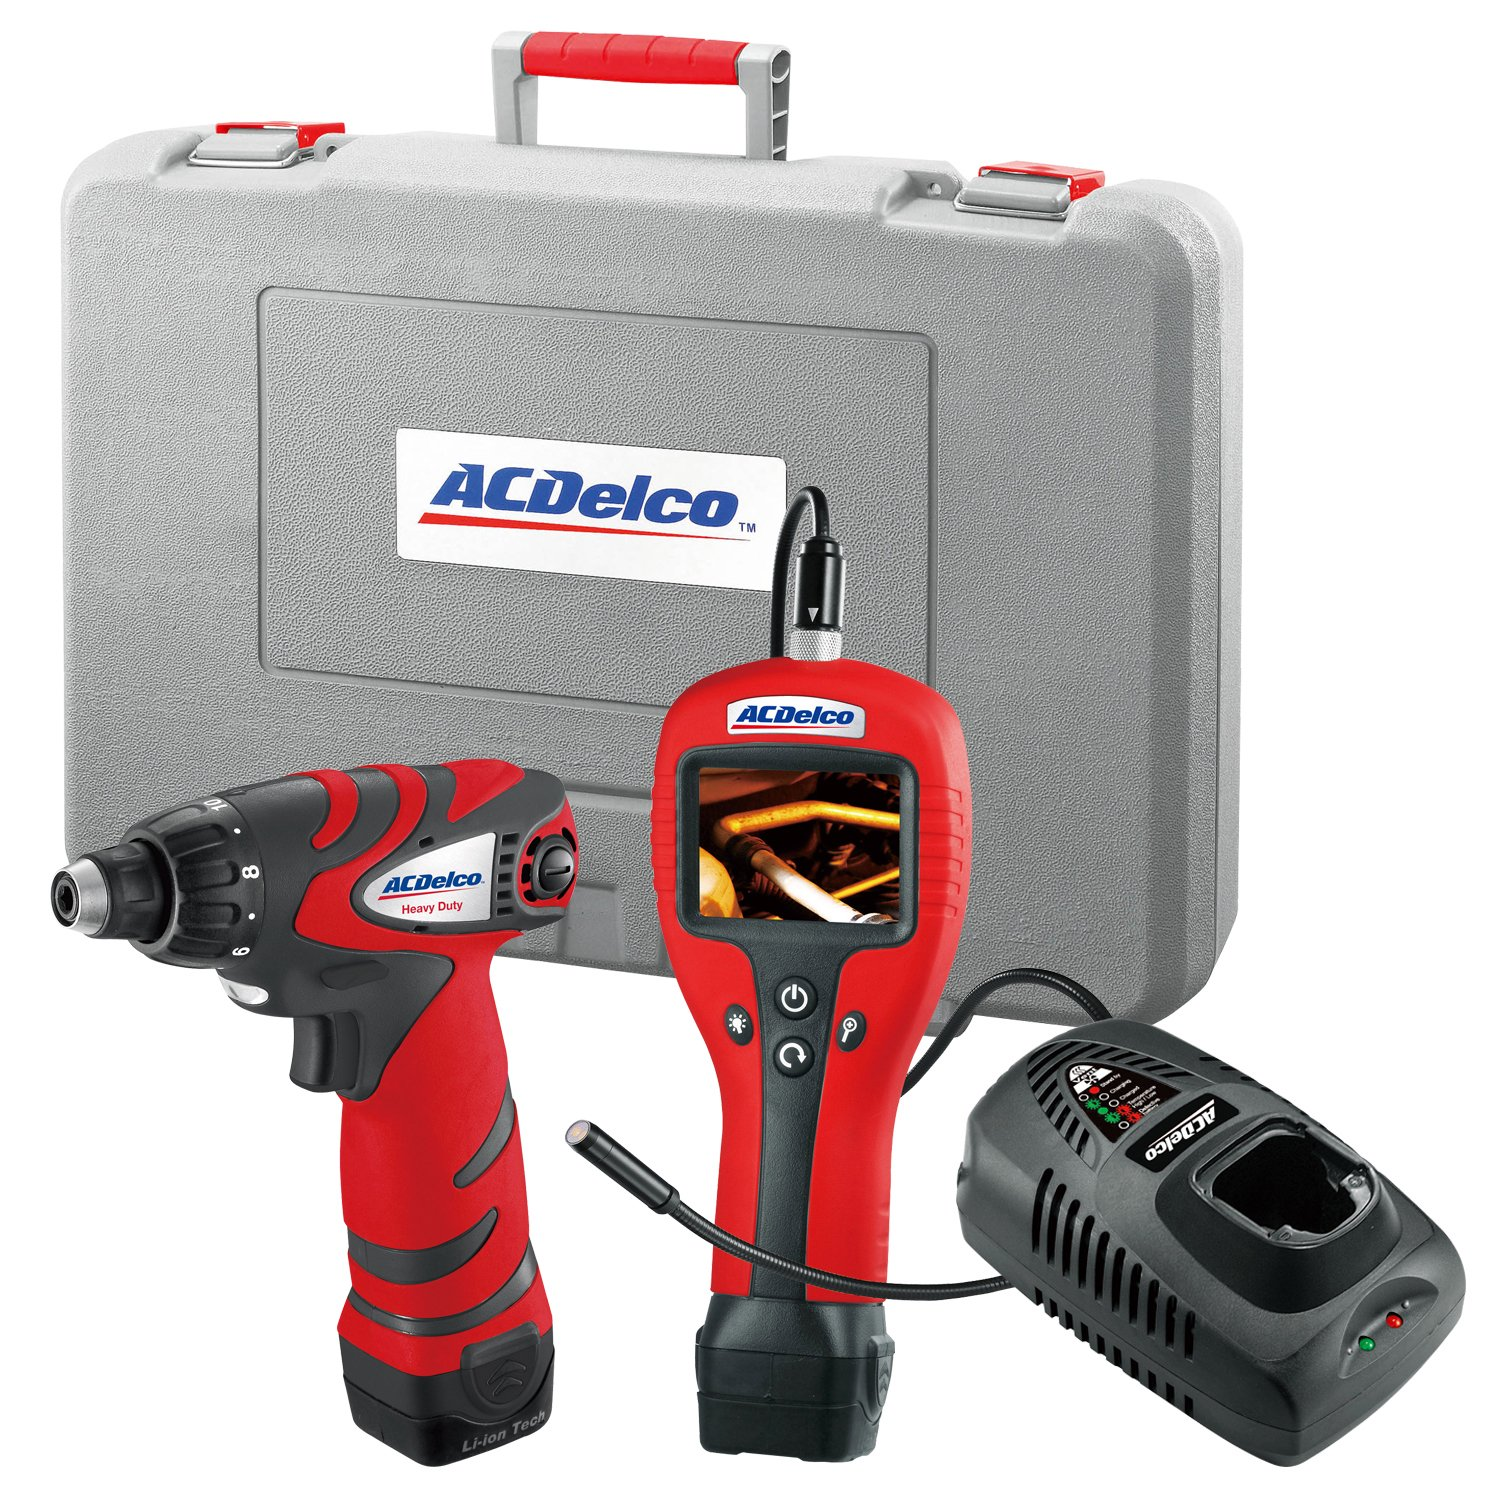 ACDelco ARZ1204D Li-Ion 12-Volt 2-in-1 Combo Kit with ARD12113 Drill/Driver Durofix